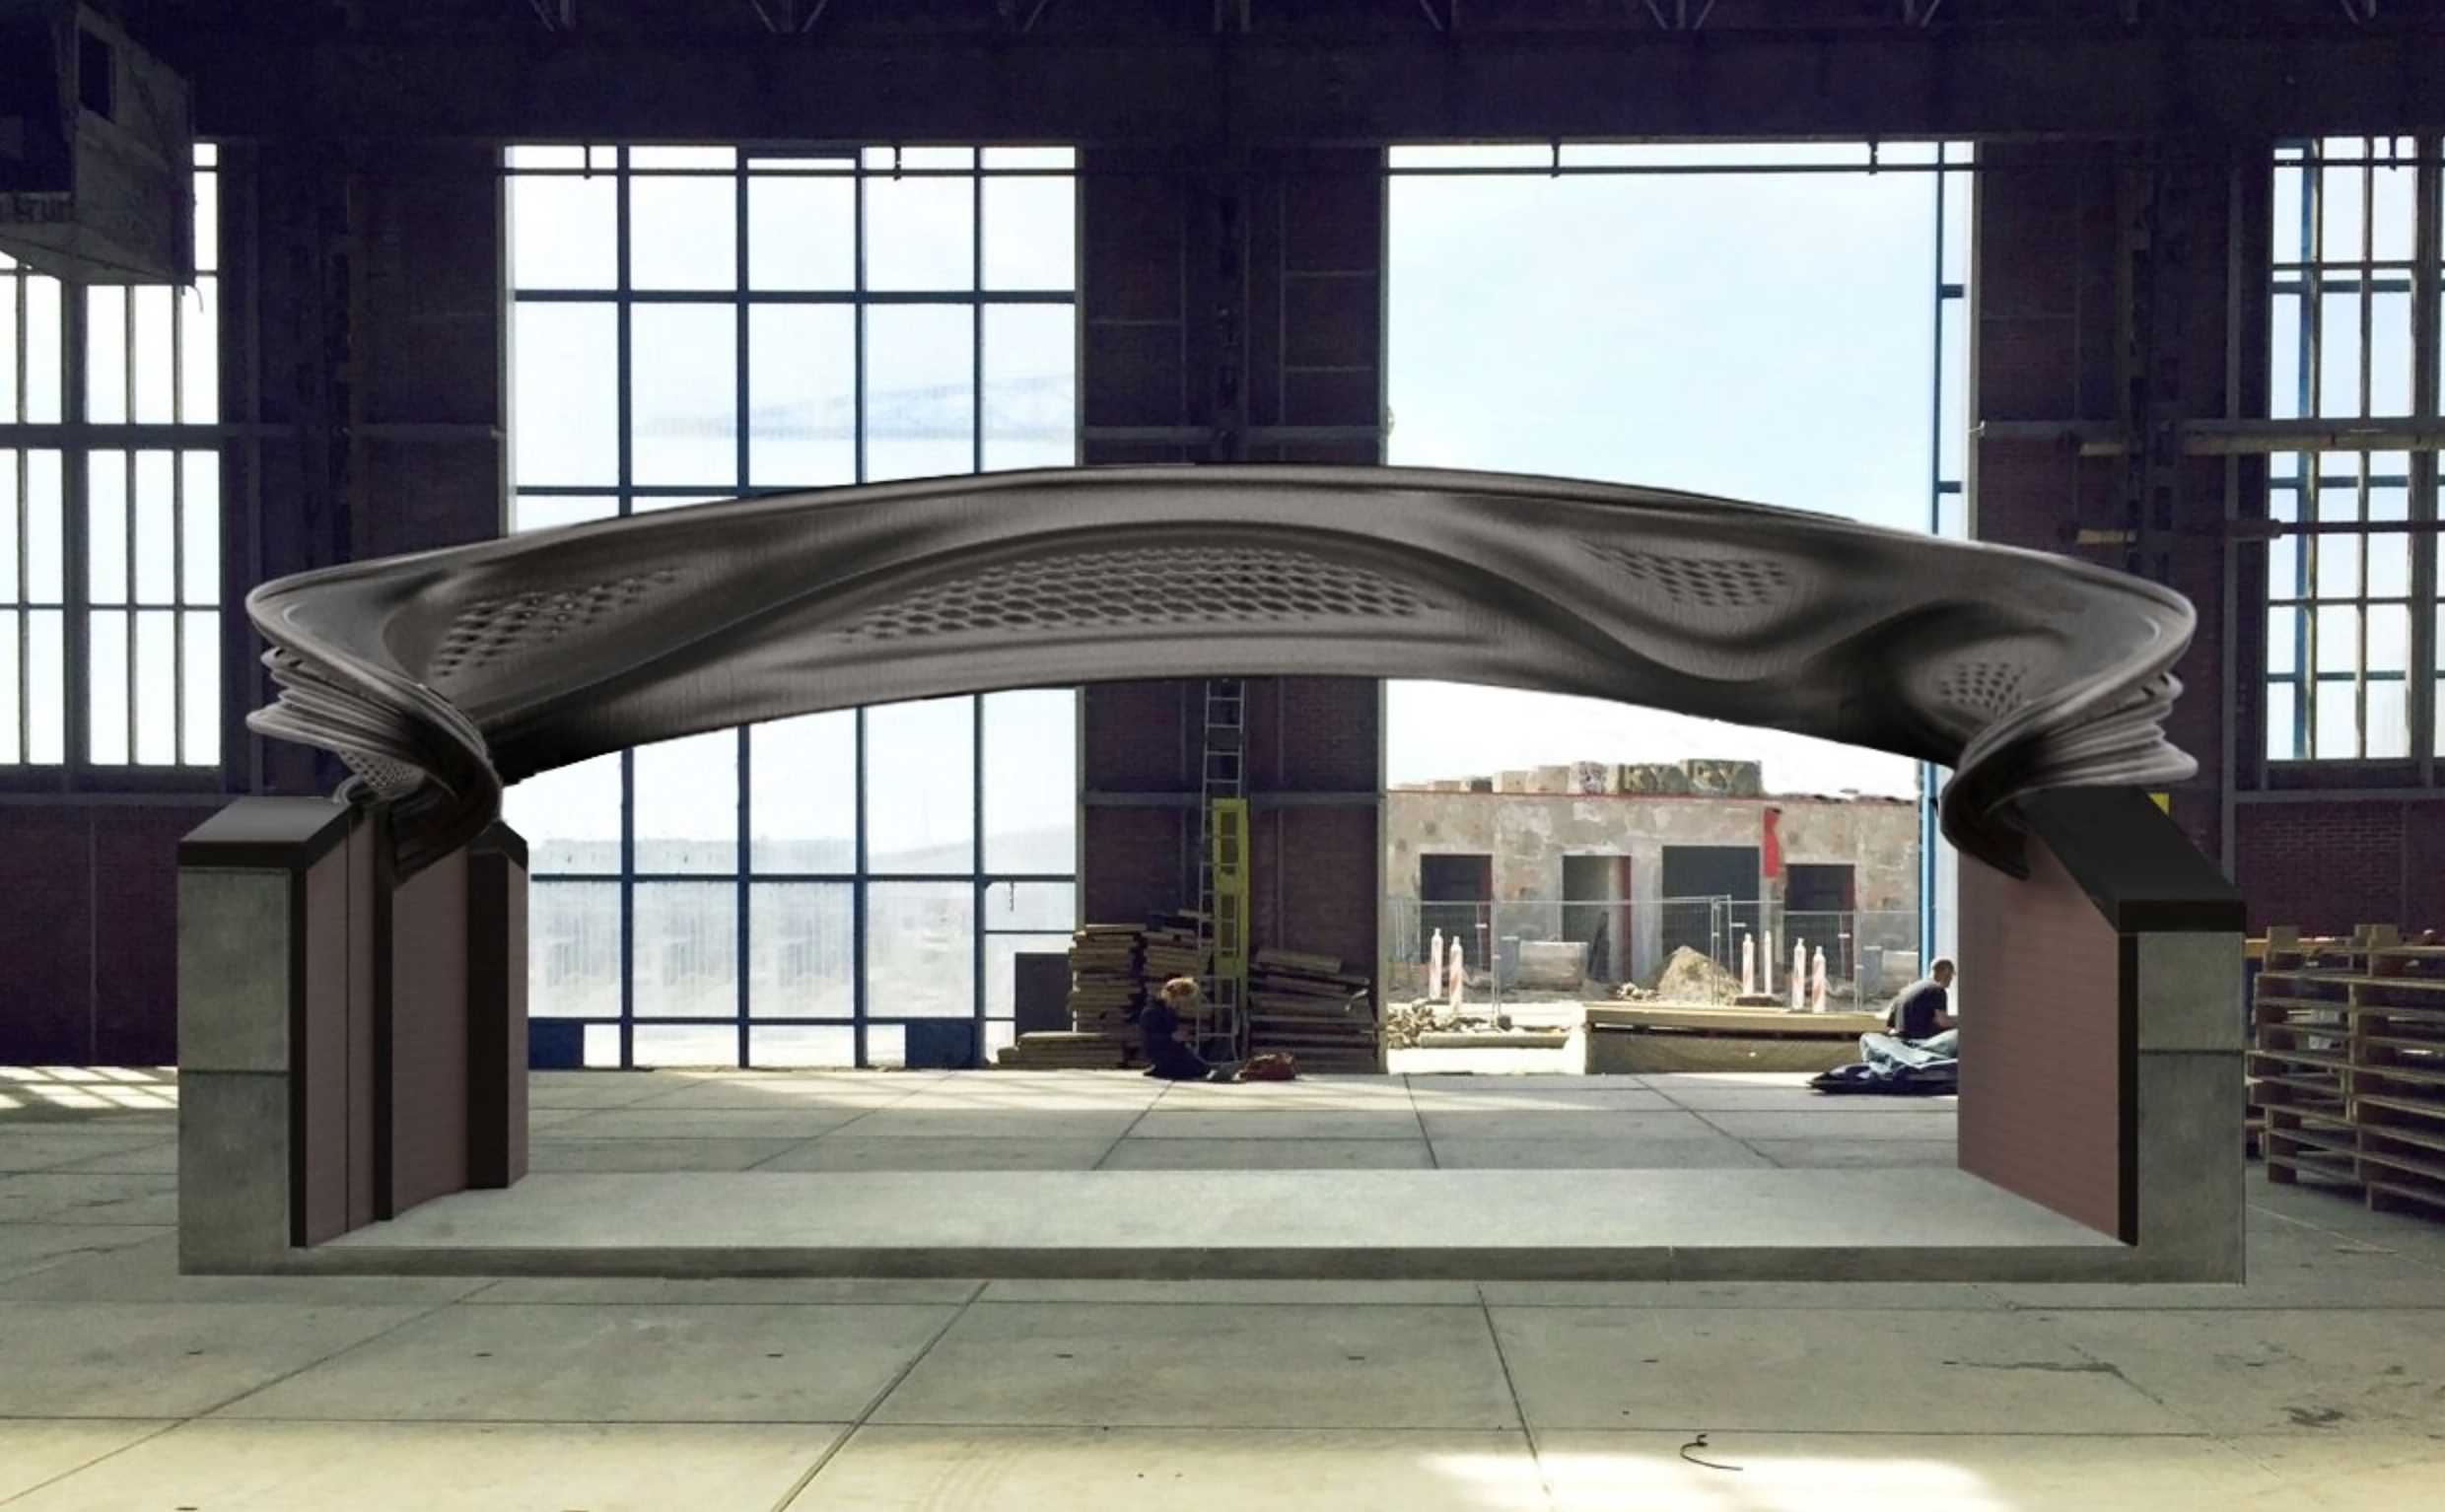 A digital twin of the world's first 3D printed steel bridge